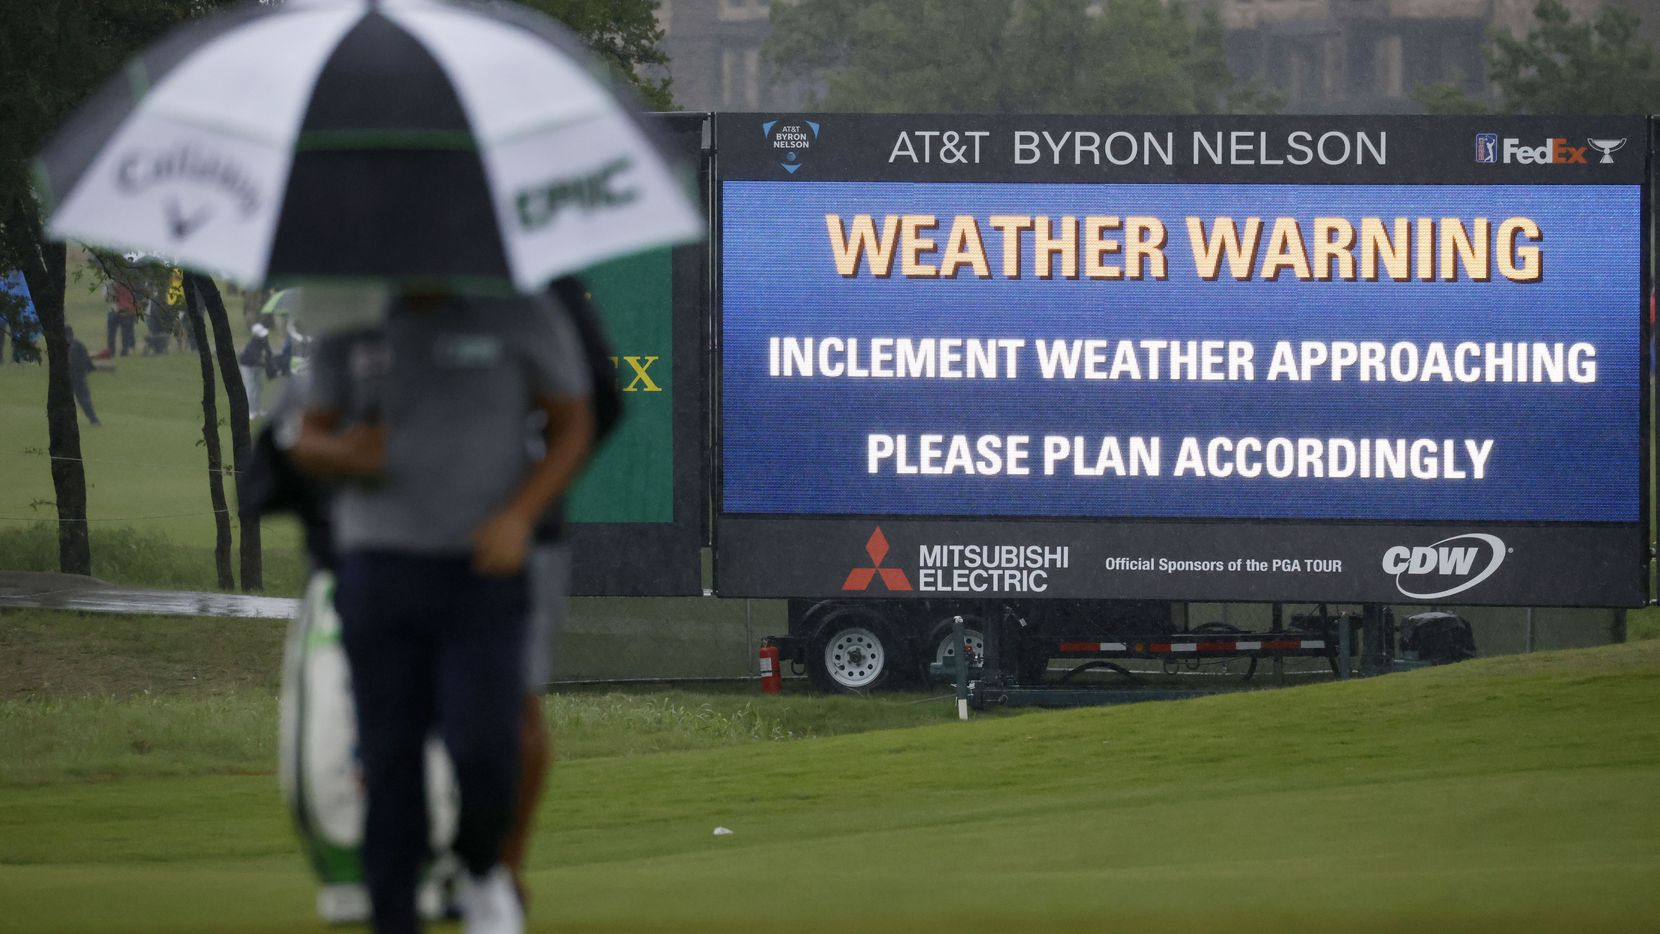 Kyoung-Hoon Lee walks the green on the 9th hole as it rains during round 4 of the AT&T Byron Nelson  at TPC Craig Ranch on Saturday, May 16, 2021 in McKinney, Texas.